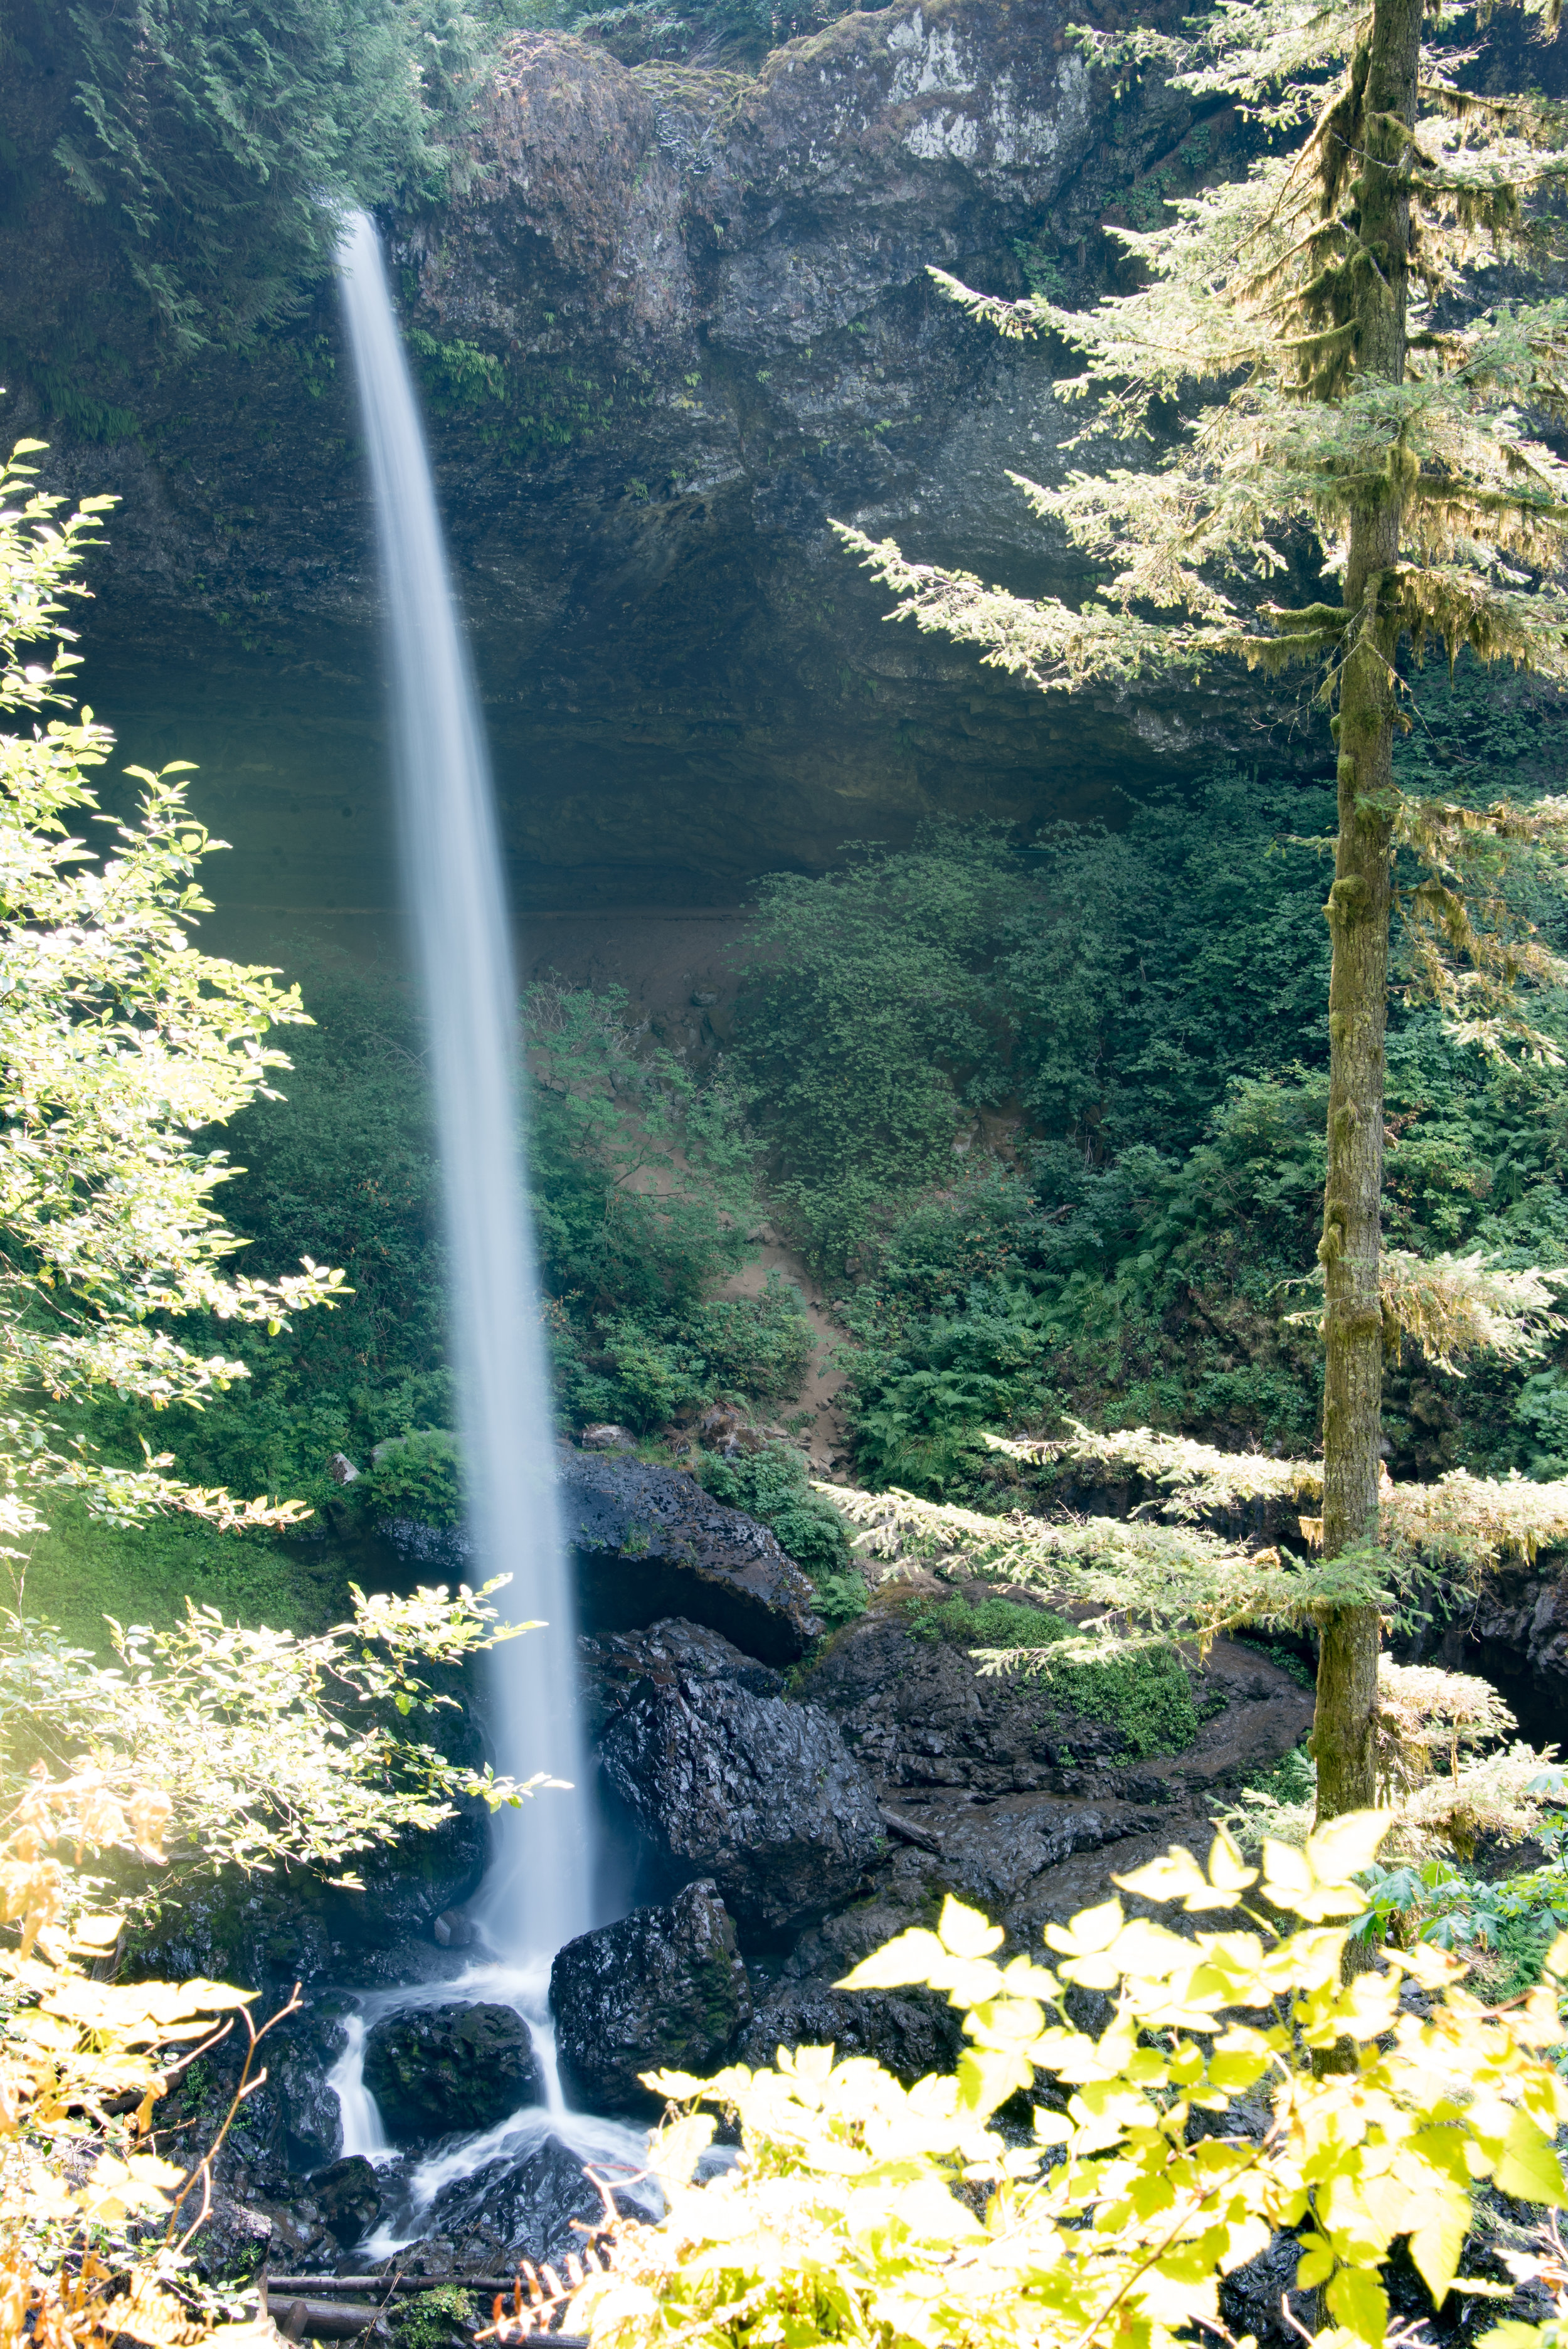 South Falls. ©2017 Images by Design